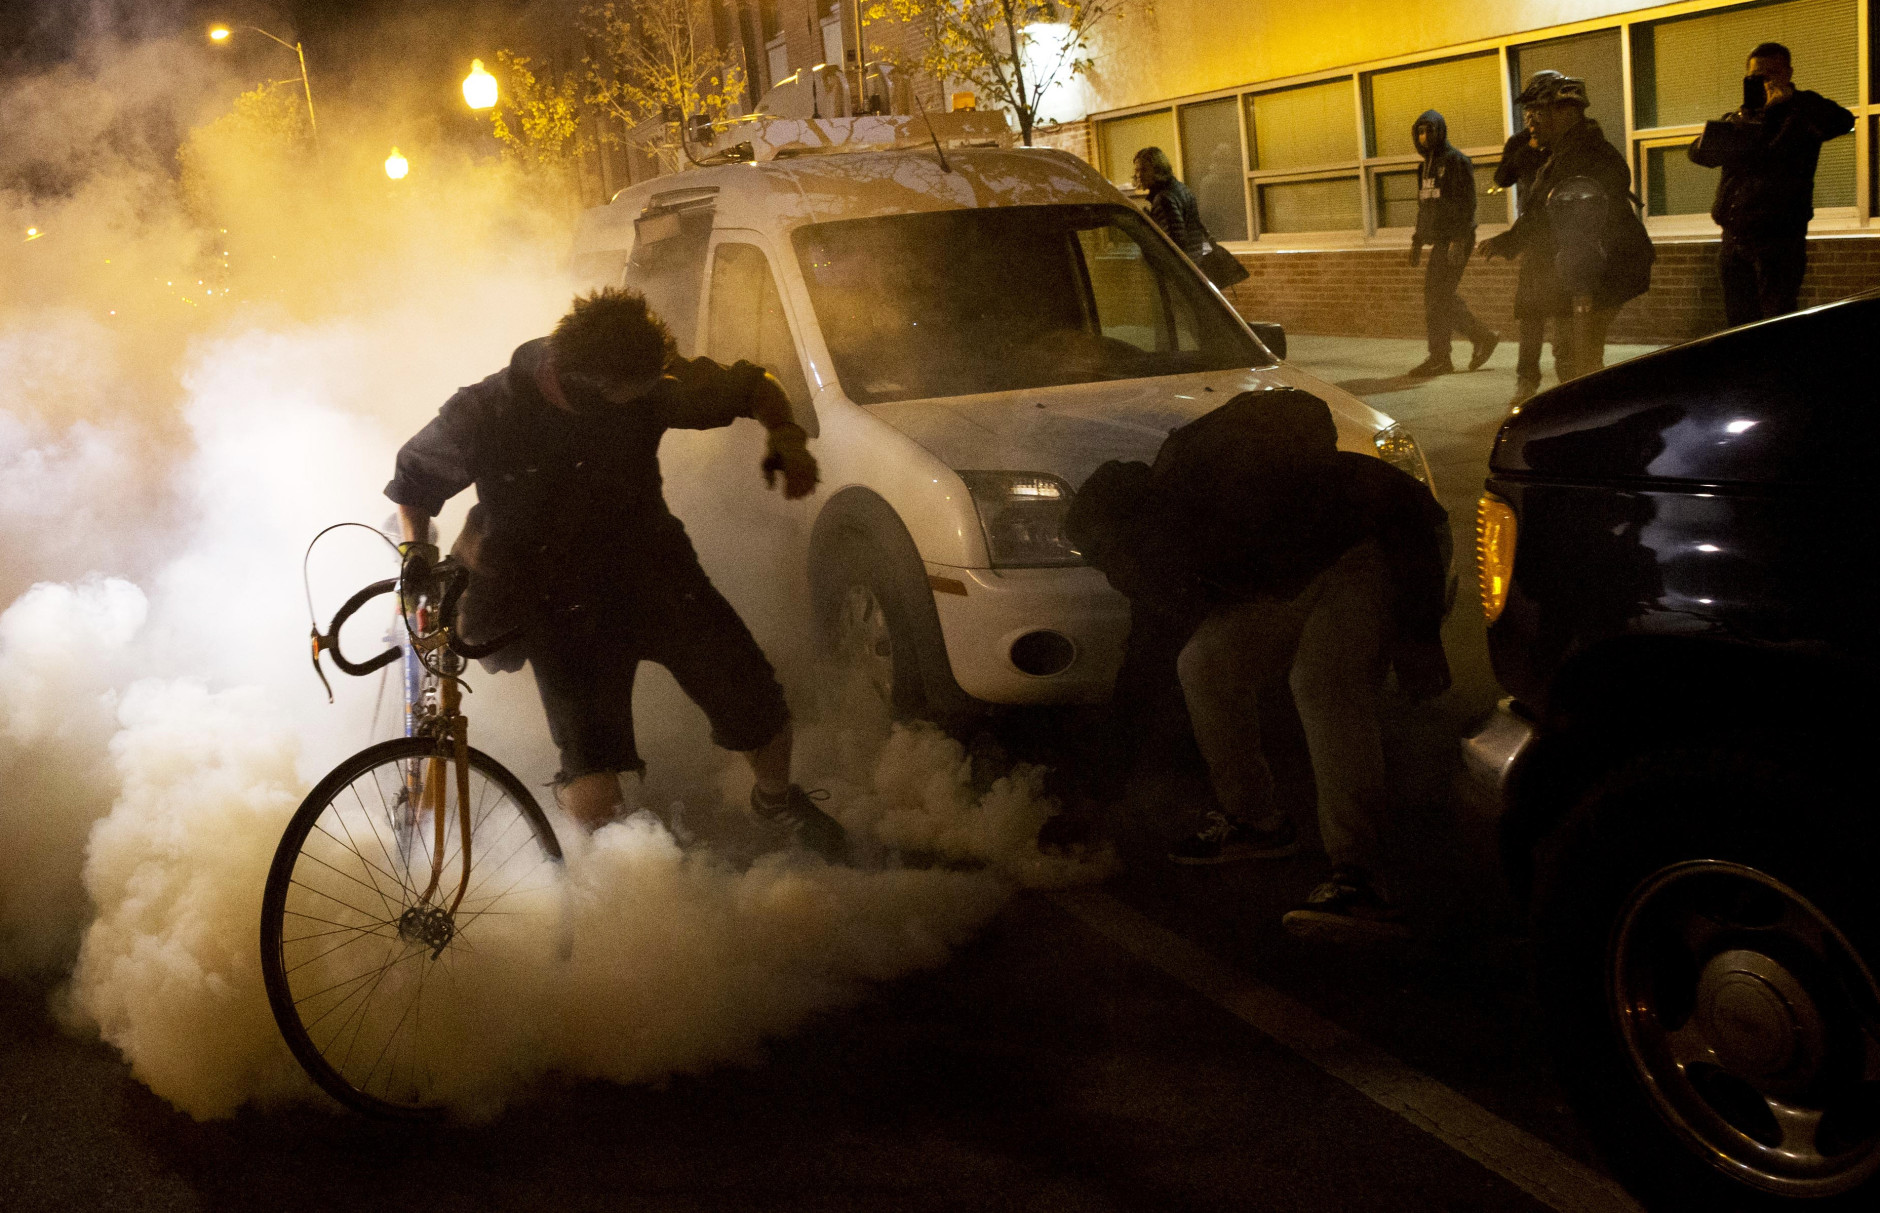 Protesters attempt to throw a tear gas canister back toward riot police after a 10 p.m. curfew went into effect in the wake of Monday's riots following the funeral for Freddie Gray, Tuesday, April 28, 2015, in Baltimore. (AP Photo/David Goldman)